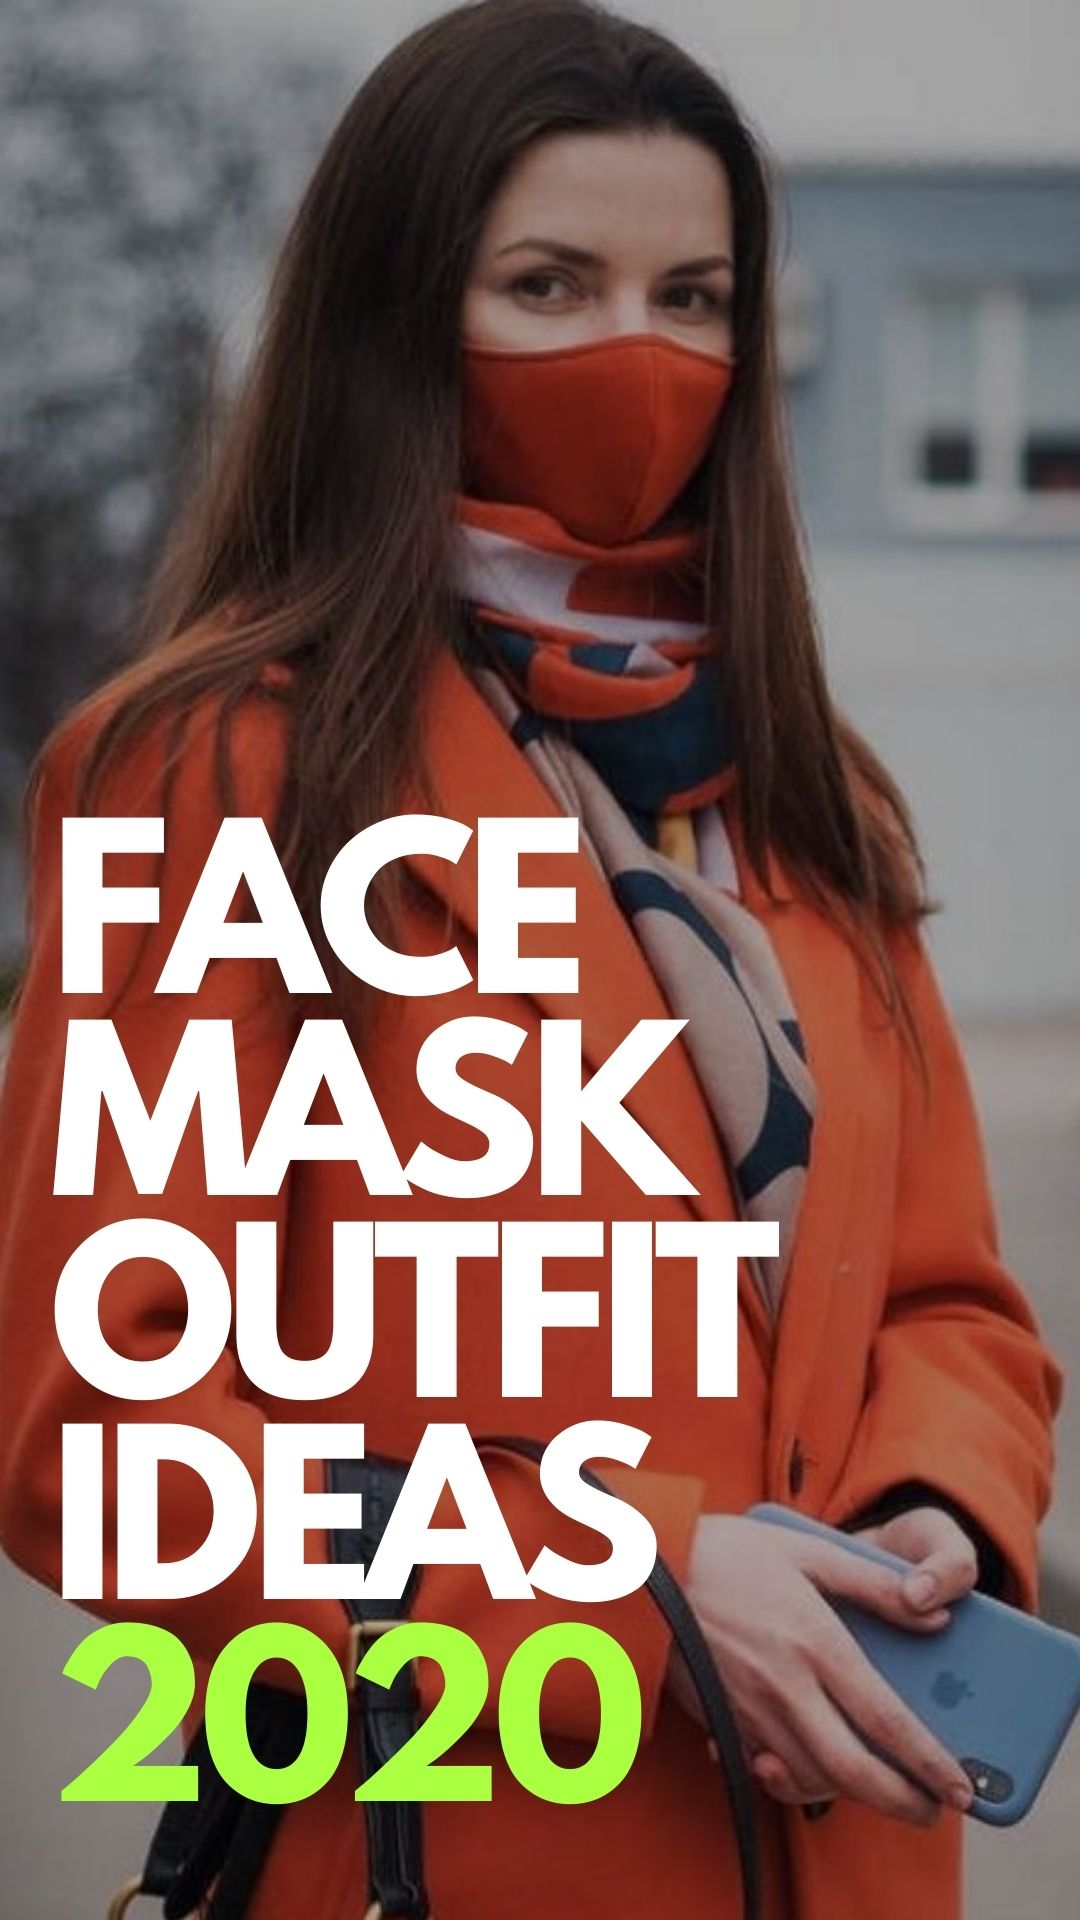 Face Mask Outfit Ideas 2020